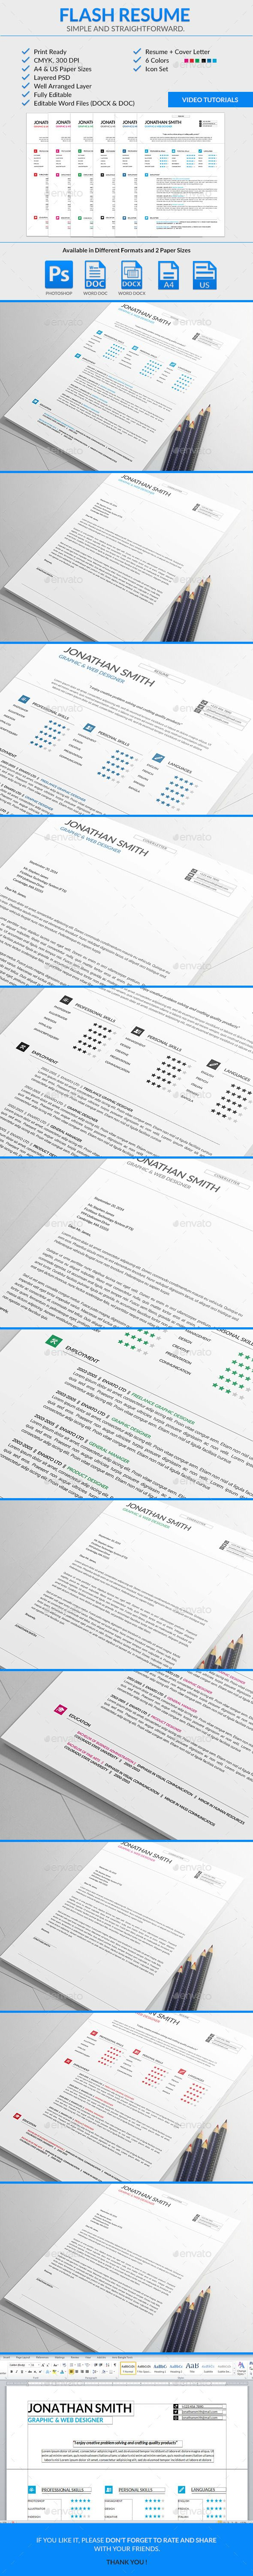 Flash Resume Template  Creative Resume Templates Font Logo And Fonts